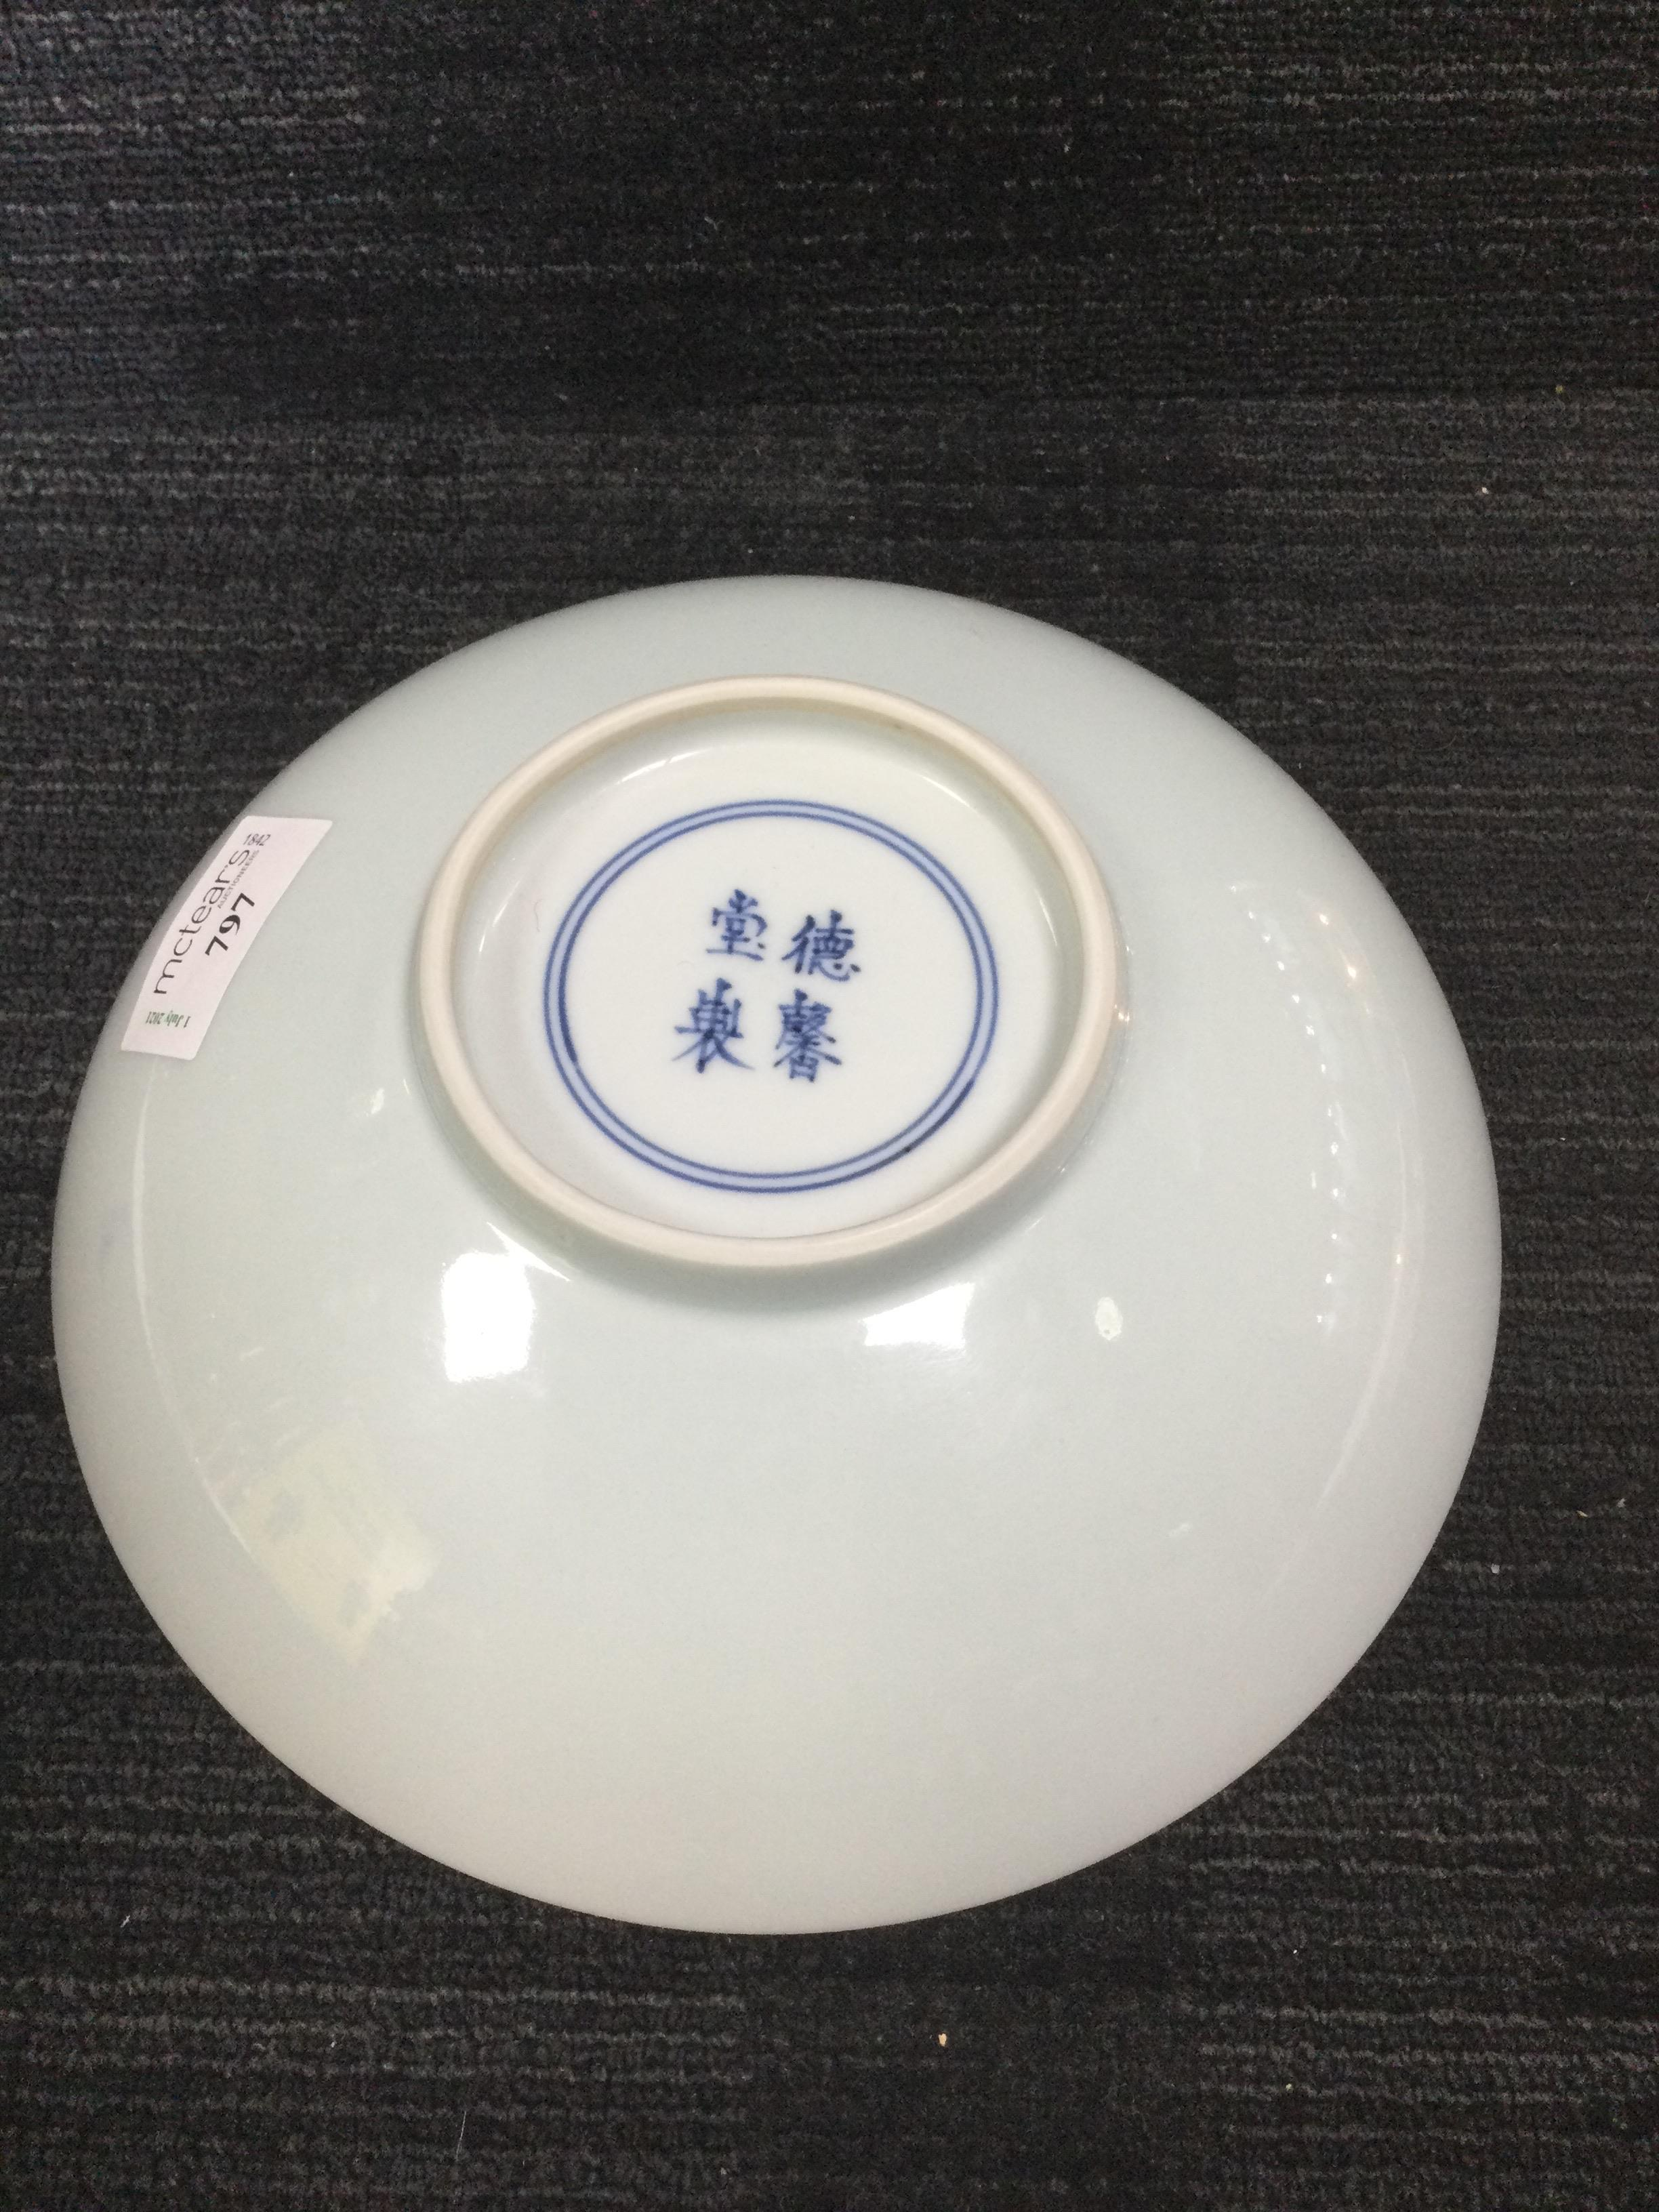 A 20TH CENTURY CHINESE BLUE AND WHITE BOWL - Image 3 of 3